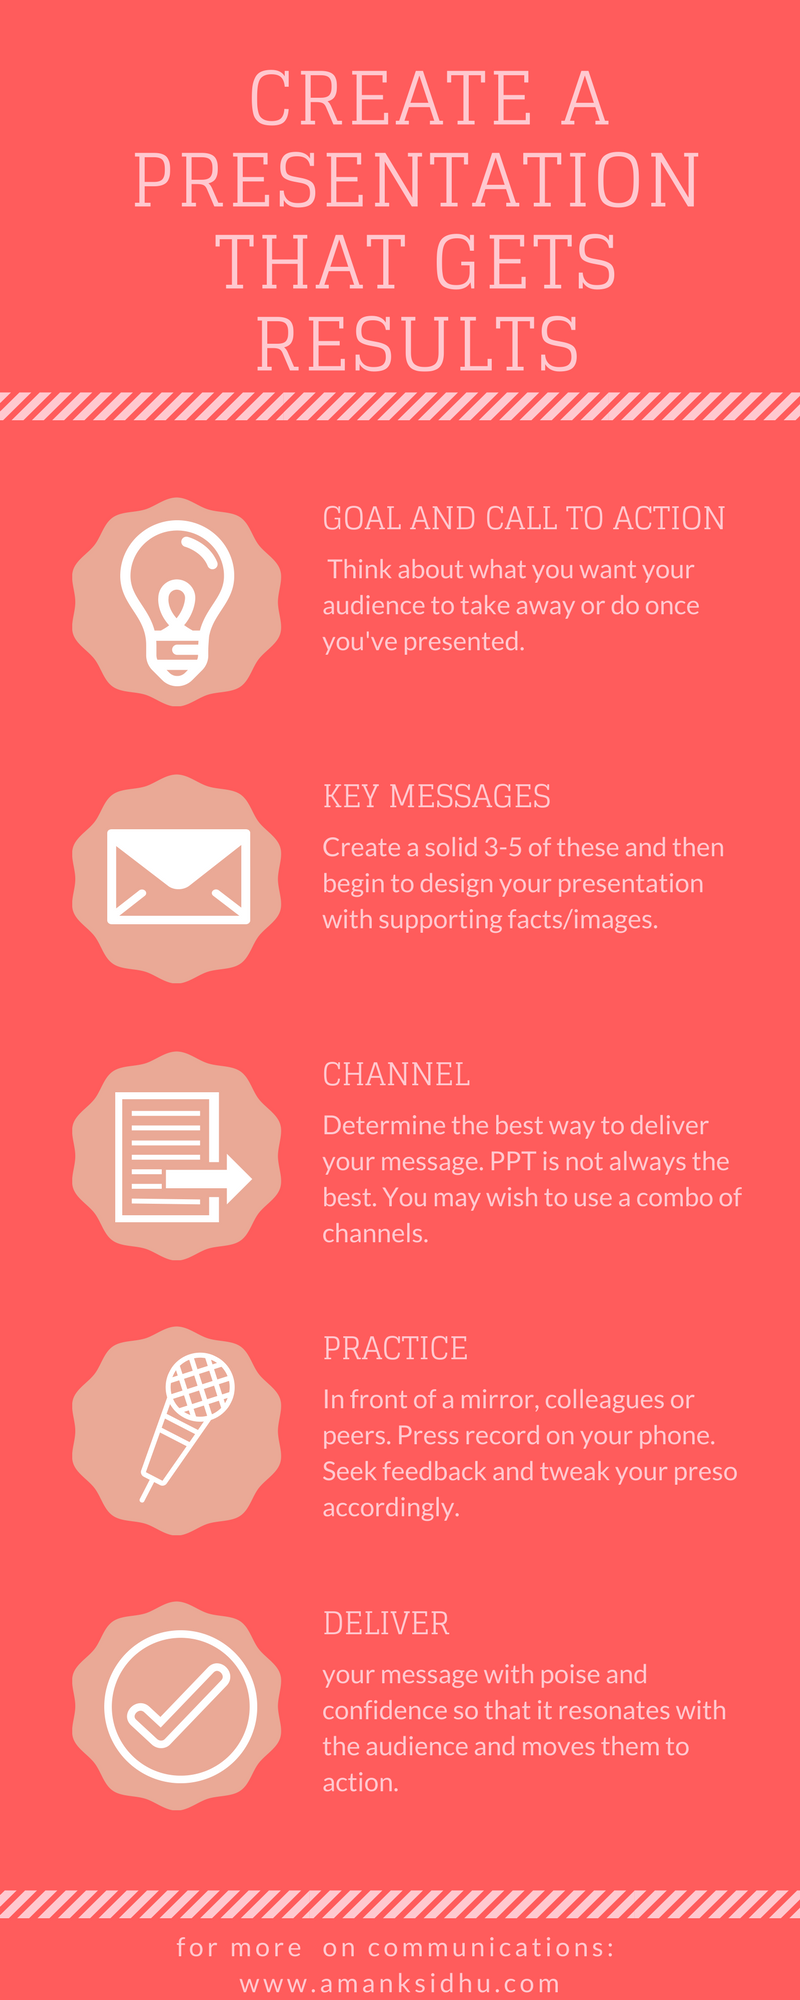 Steps to prepare a Preso infographic.png